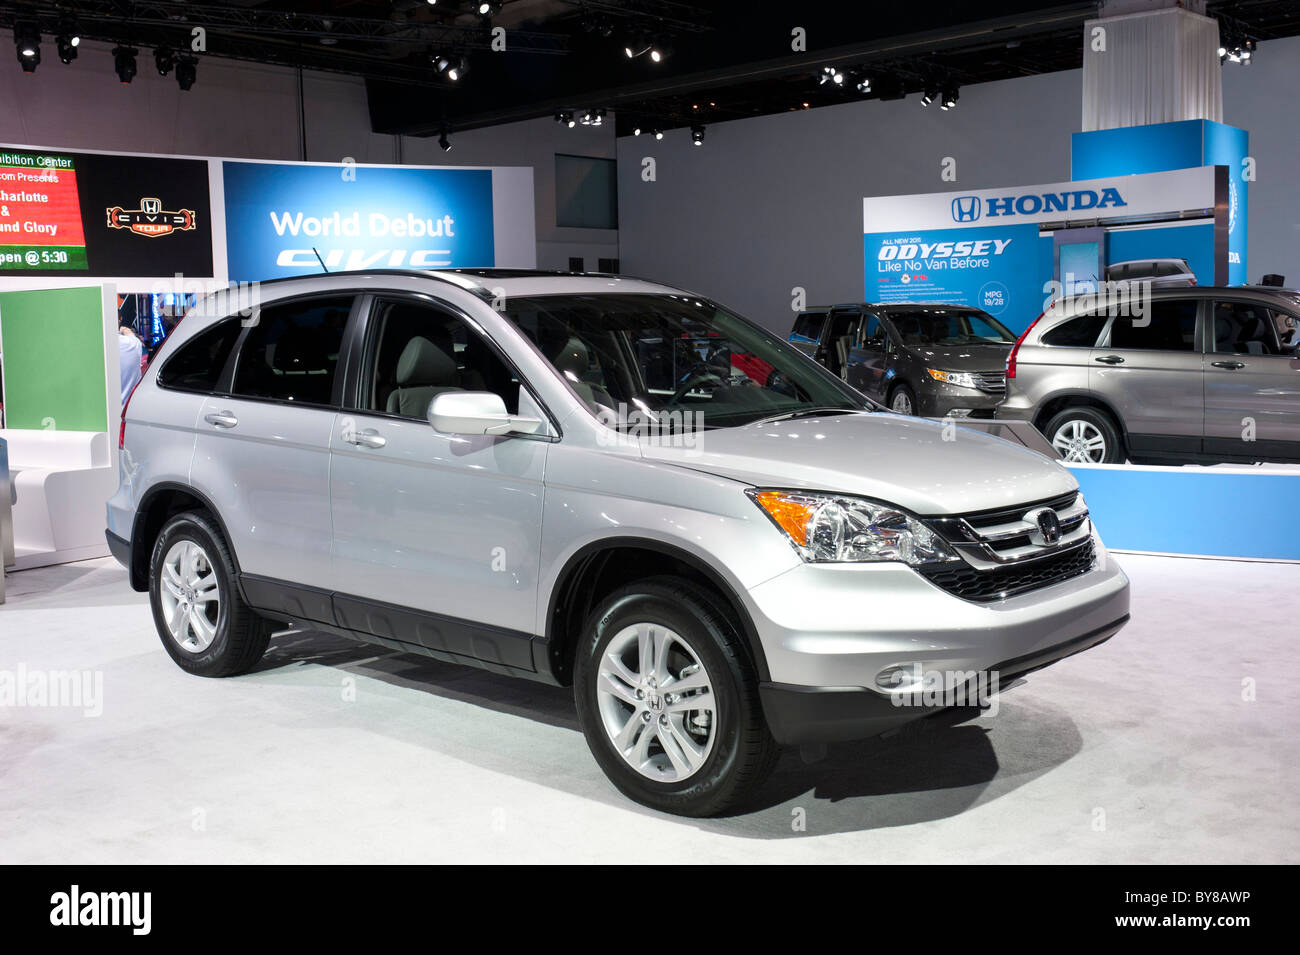 2011 Honda CR-V at the 2011 North American International Auto Show in Detroit - Stock Image